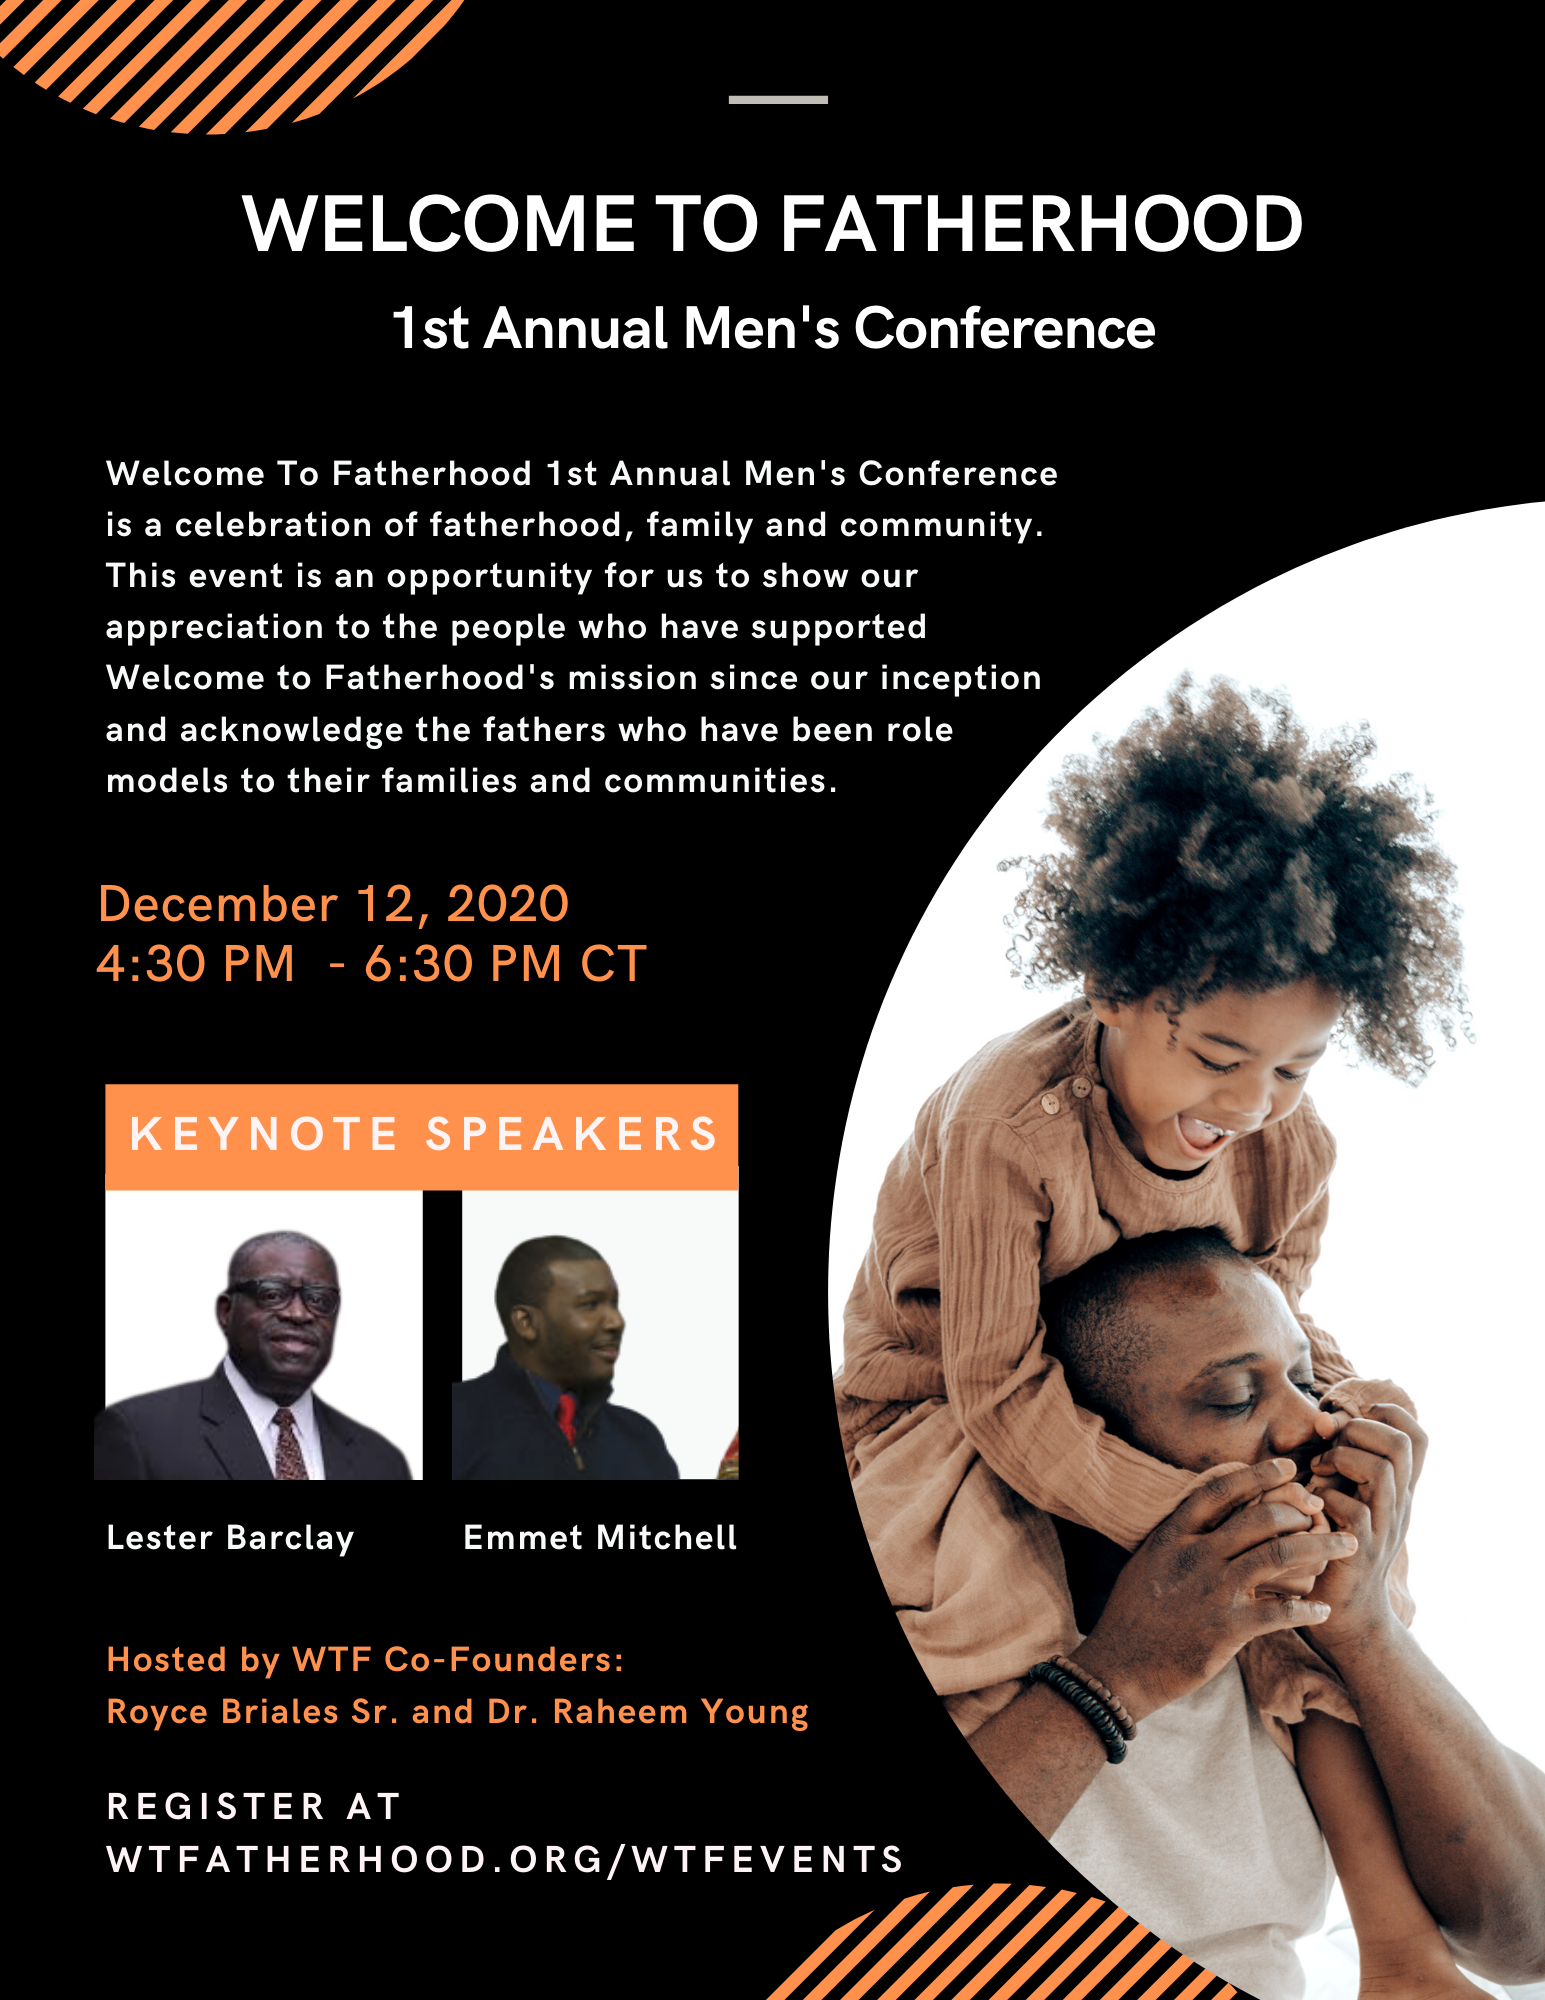 Welcome to Fatherhood (WTF) Annual Men's Conference